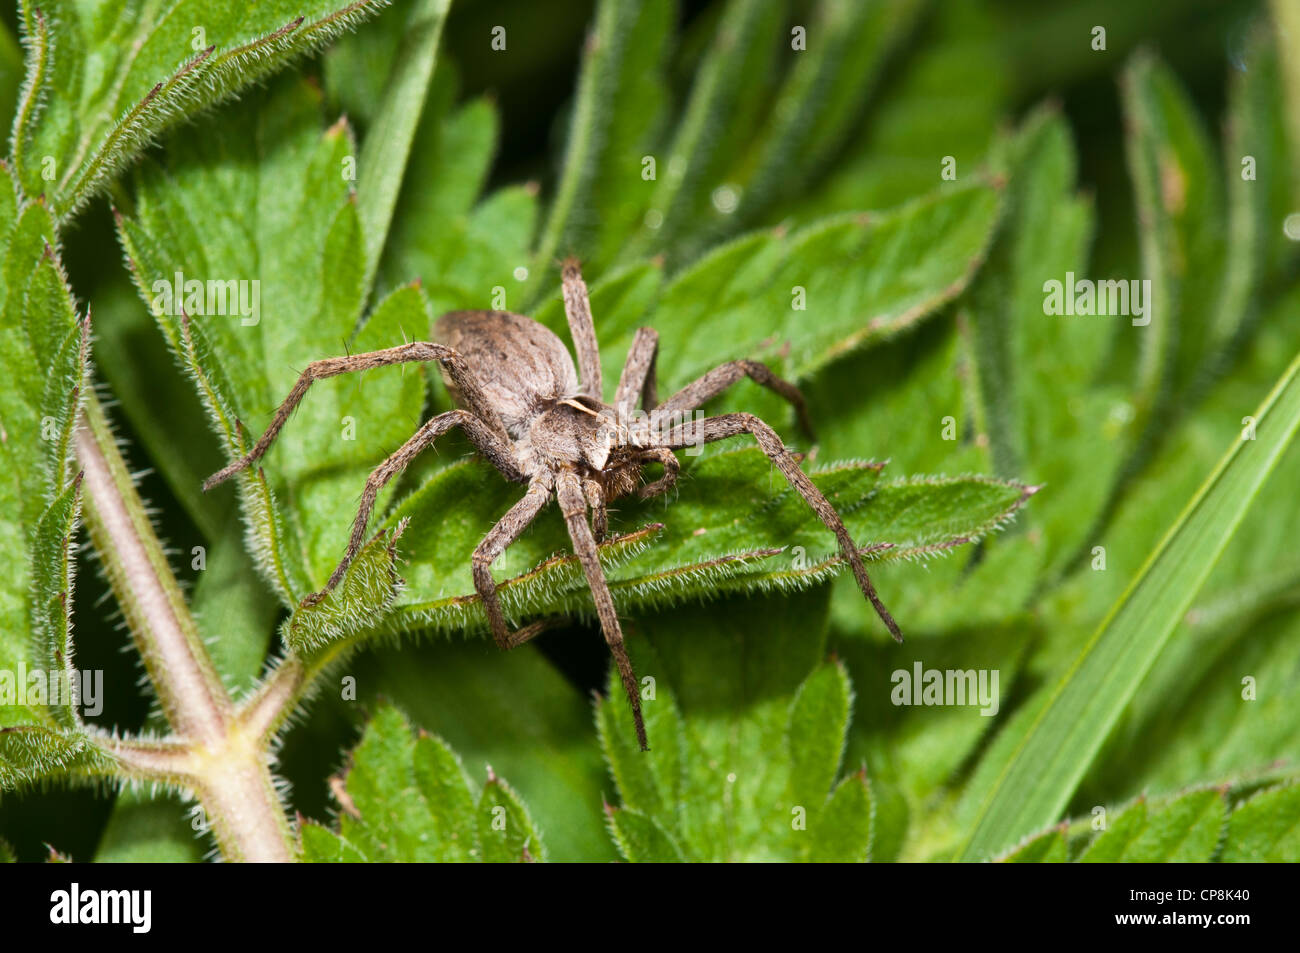 A female nursery web spider (Pisaura mirabilis) perched on a leaf at Crossness Nature Reserve, Bexley, Kent. May. - Stock Image